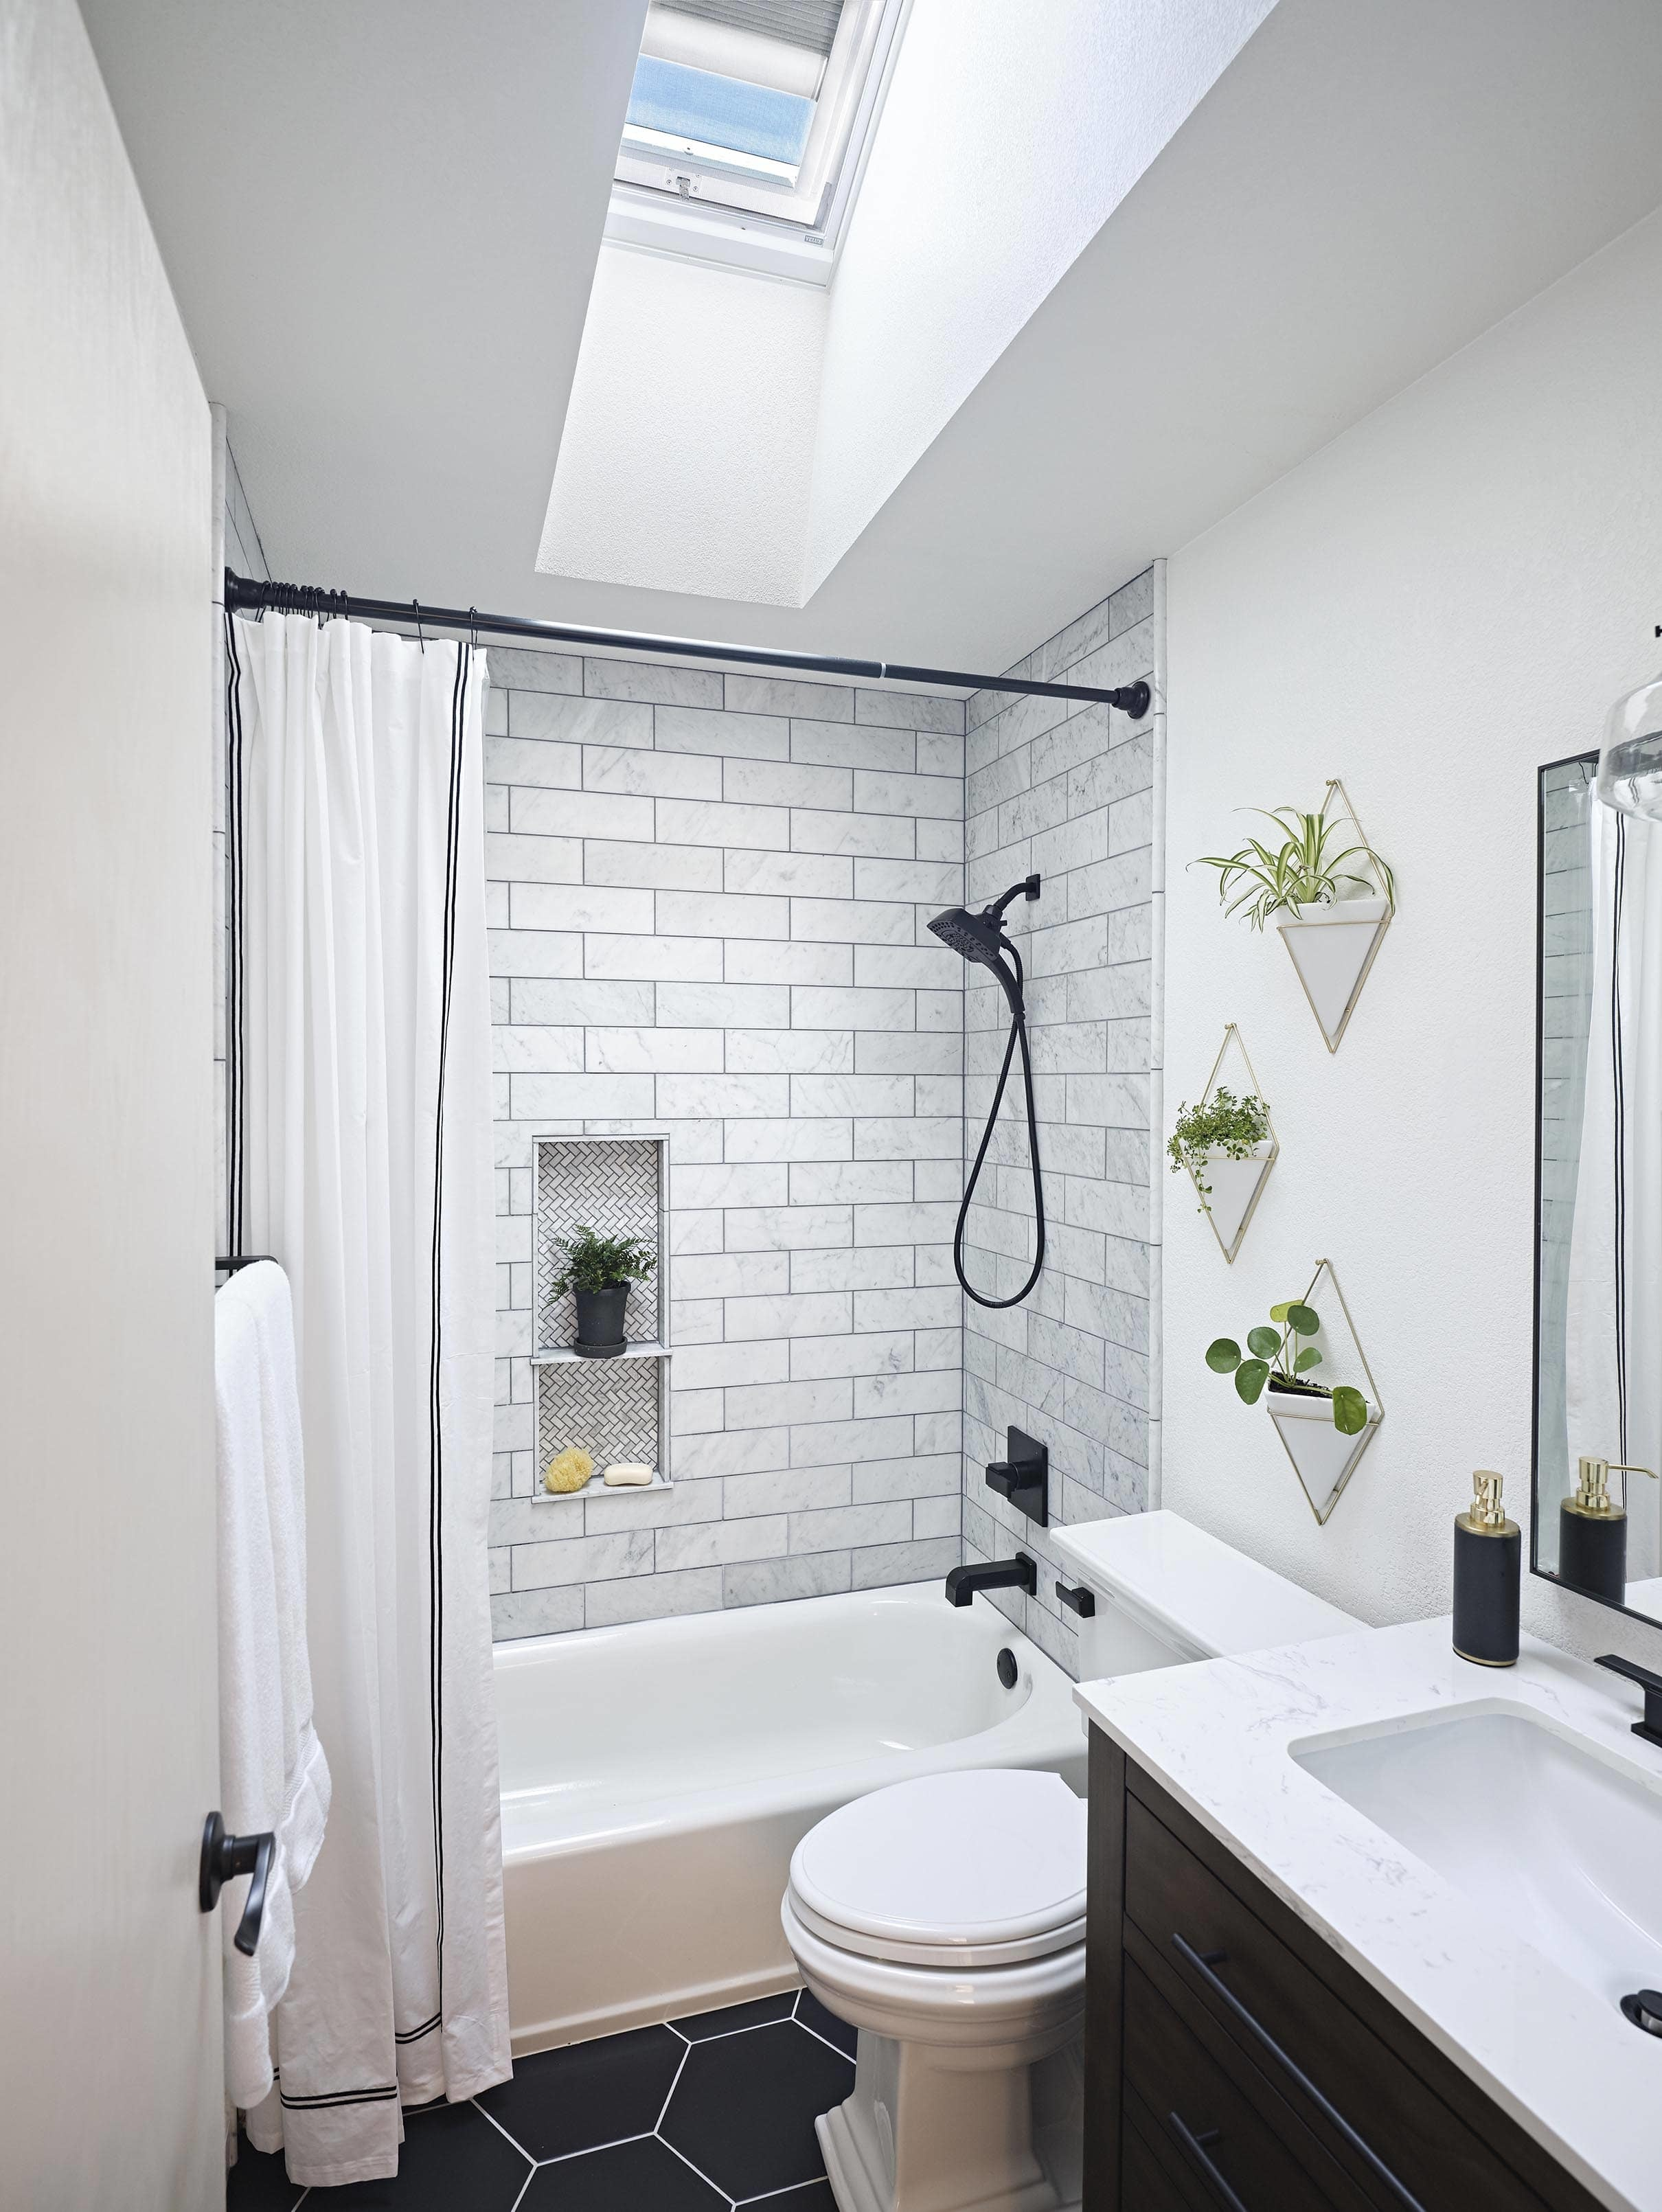 Small bathroom skylight black tile